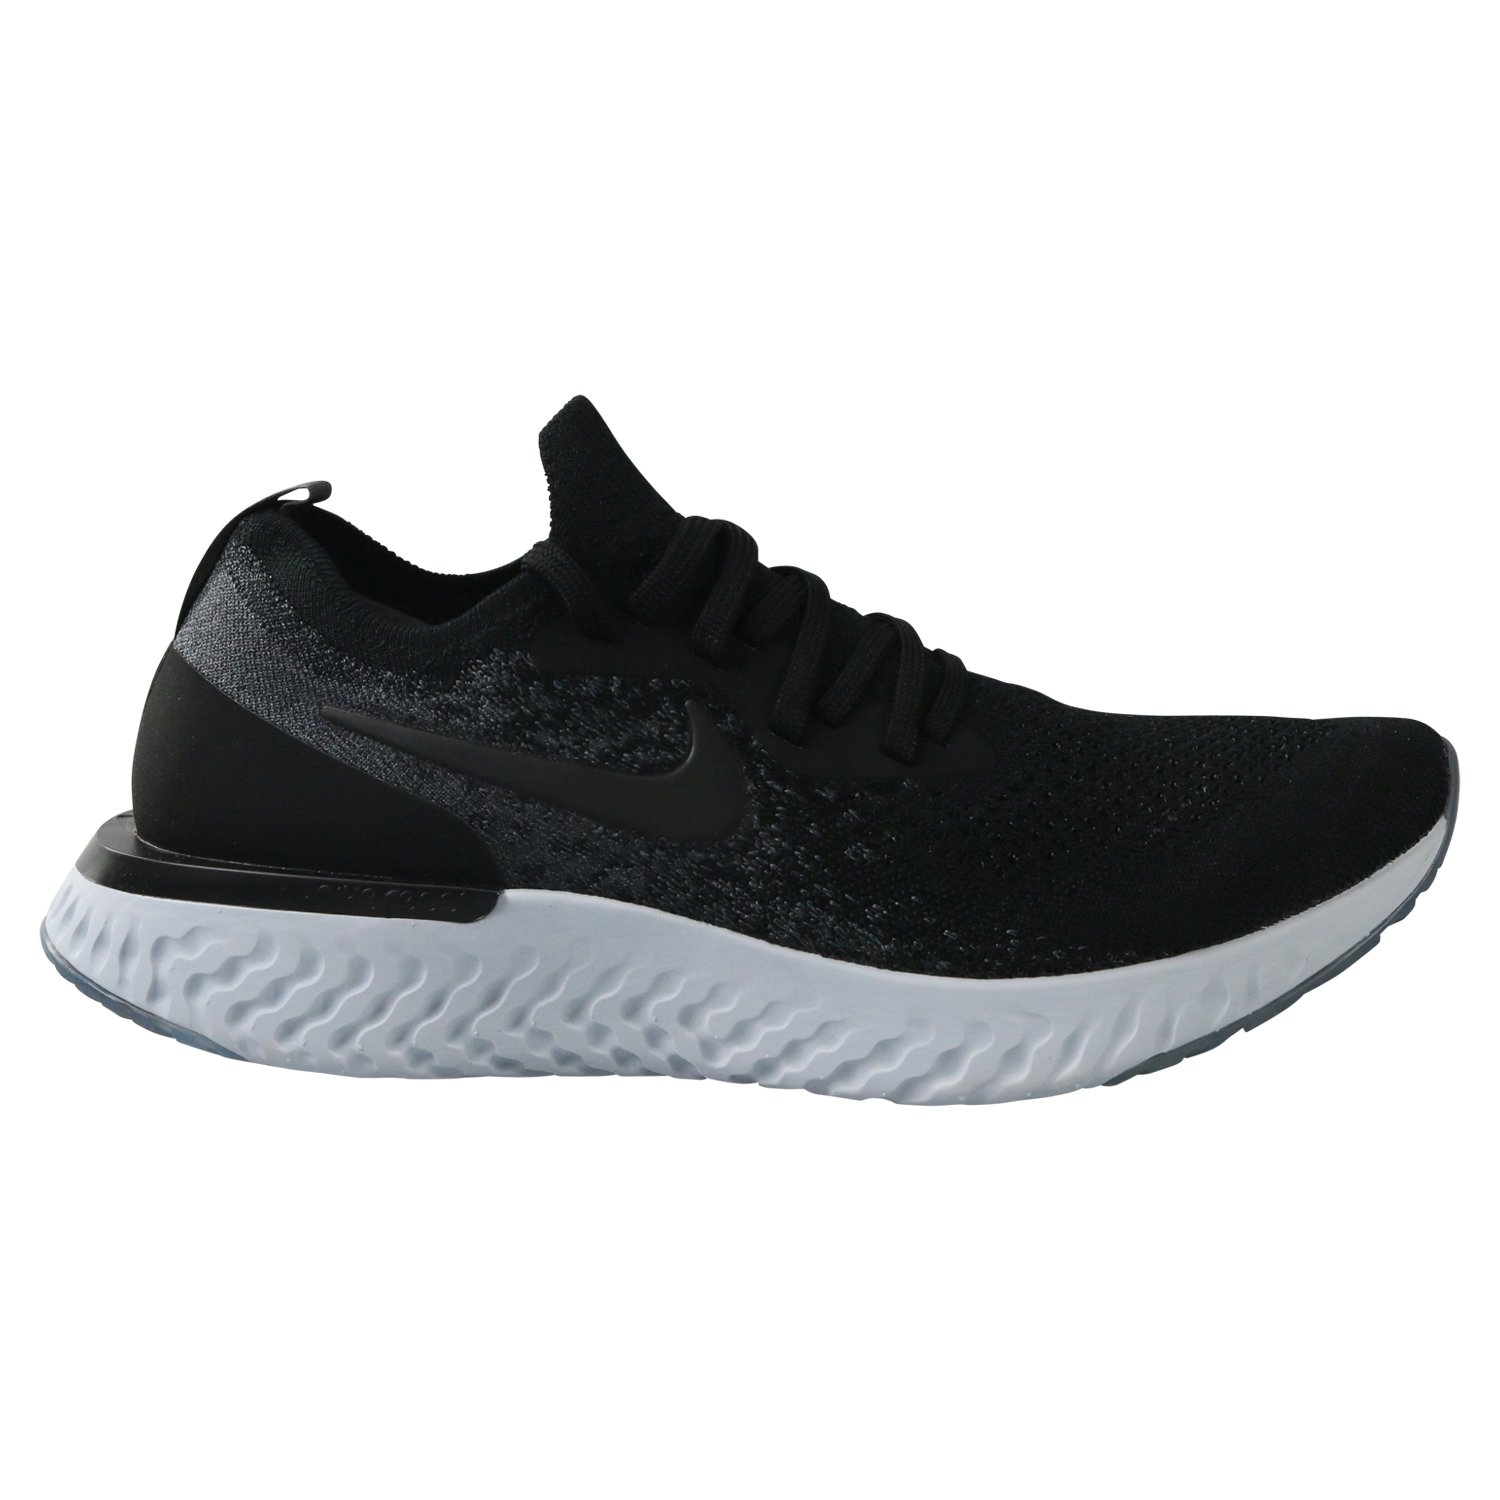 205c699ee2406e Galleon - Nike Men s Epic React Flyknit Running Shoe (10 D(M) US ...